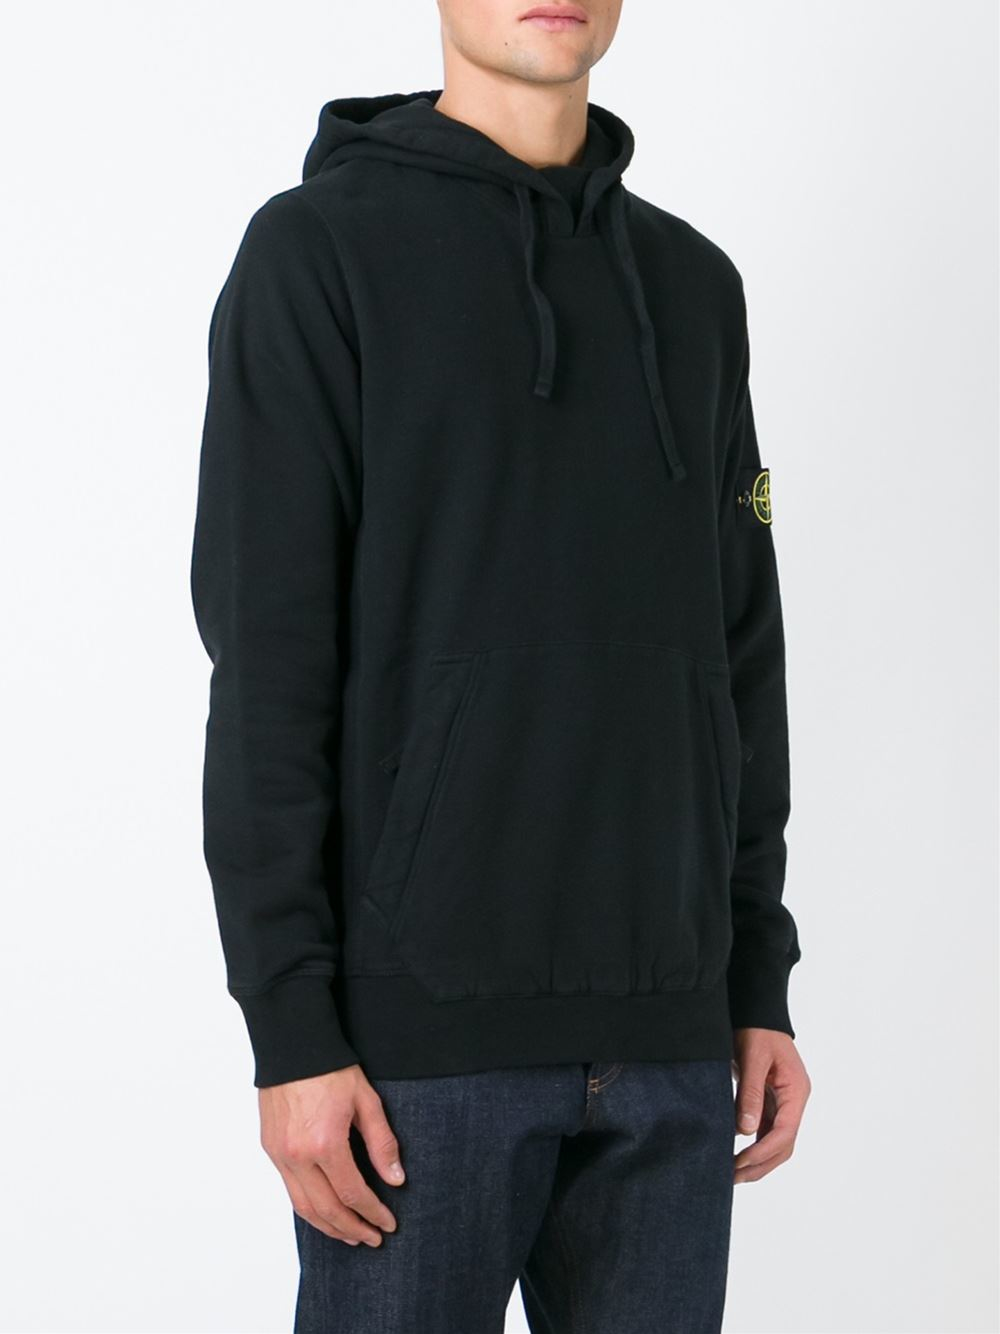 stone island kangaroo pocket hoodie in black for men lyst. Black Bedroom Furniture Sets. Home Design Ideas